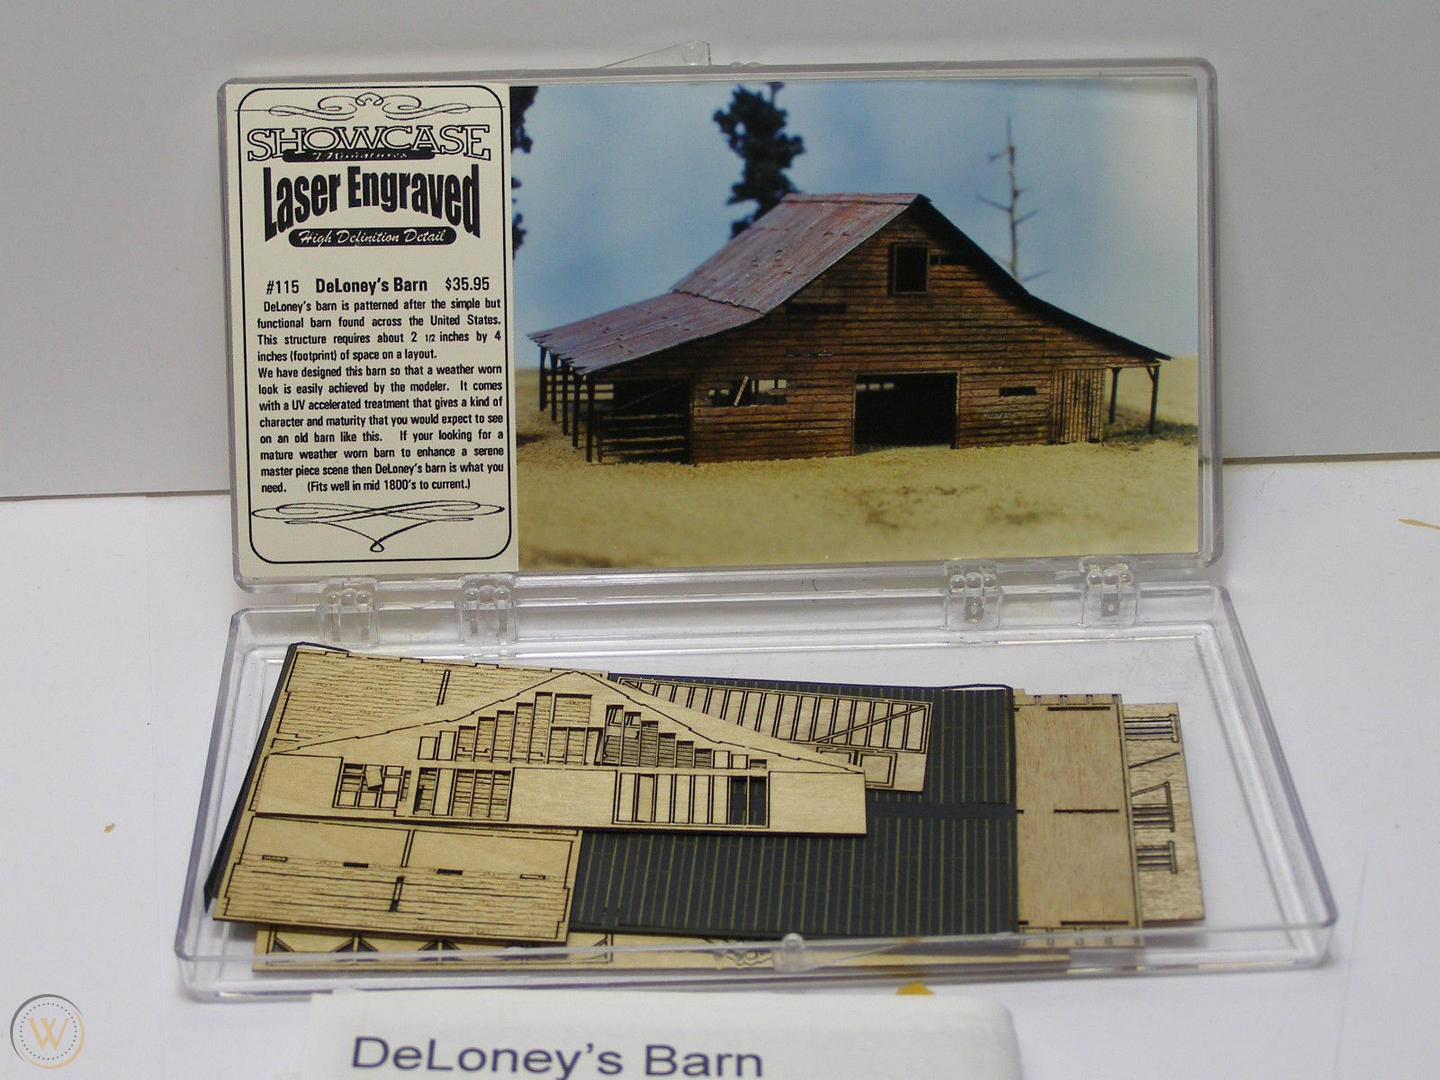 N Scale - Showcase Miniatures - 115 - Agricultural Structures - DeLoney